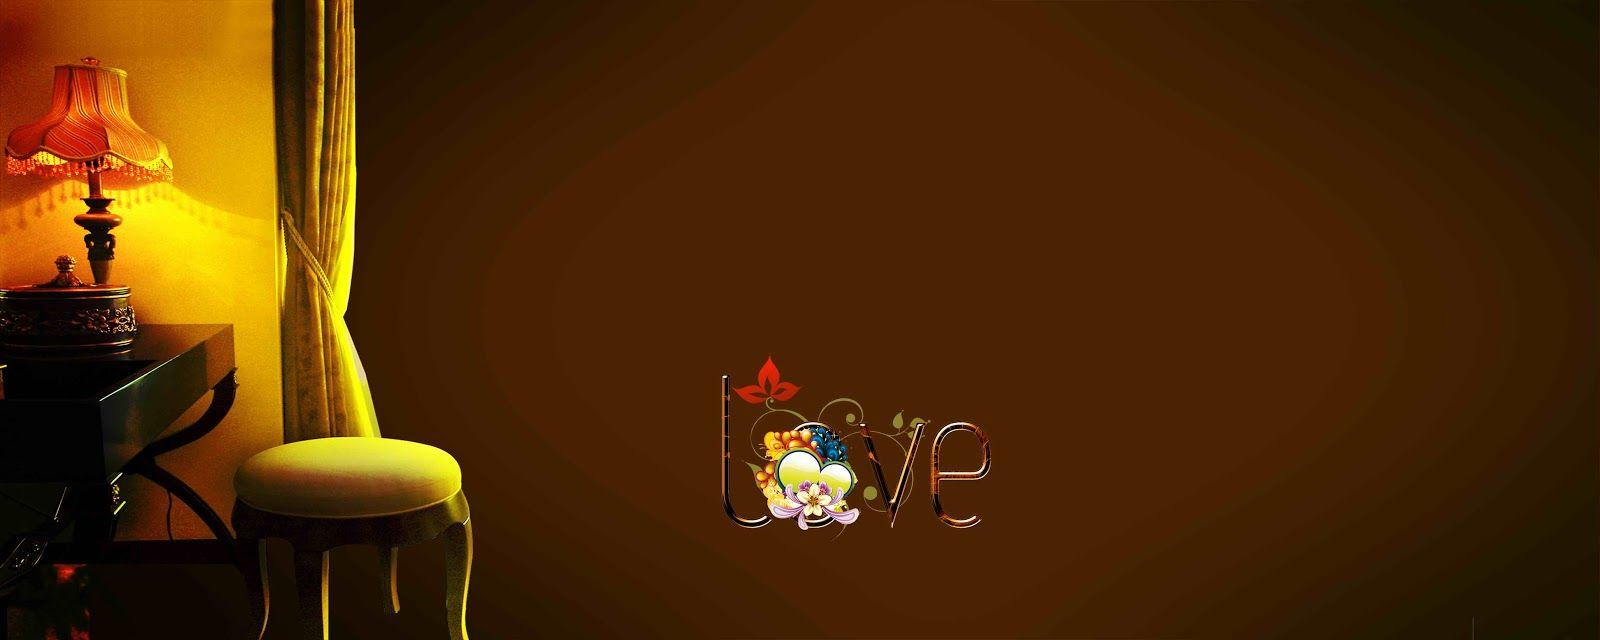 Wedding Photo Background Psd Free Download Wpawpartco